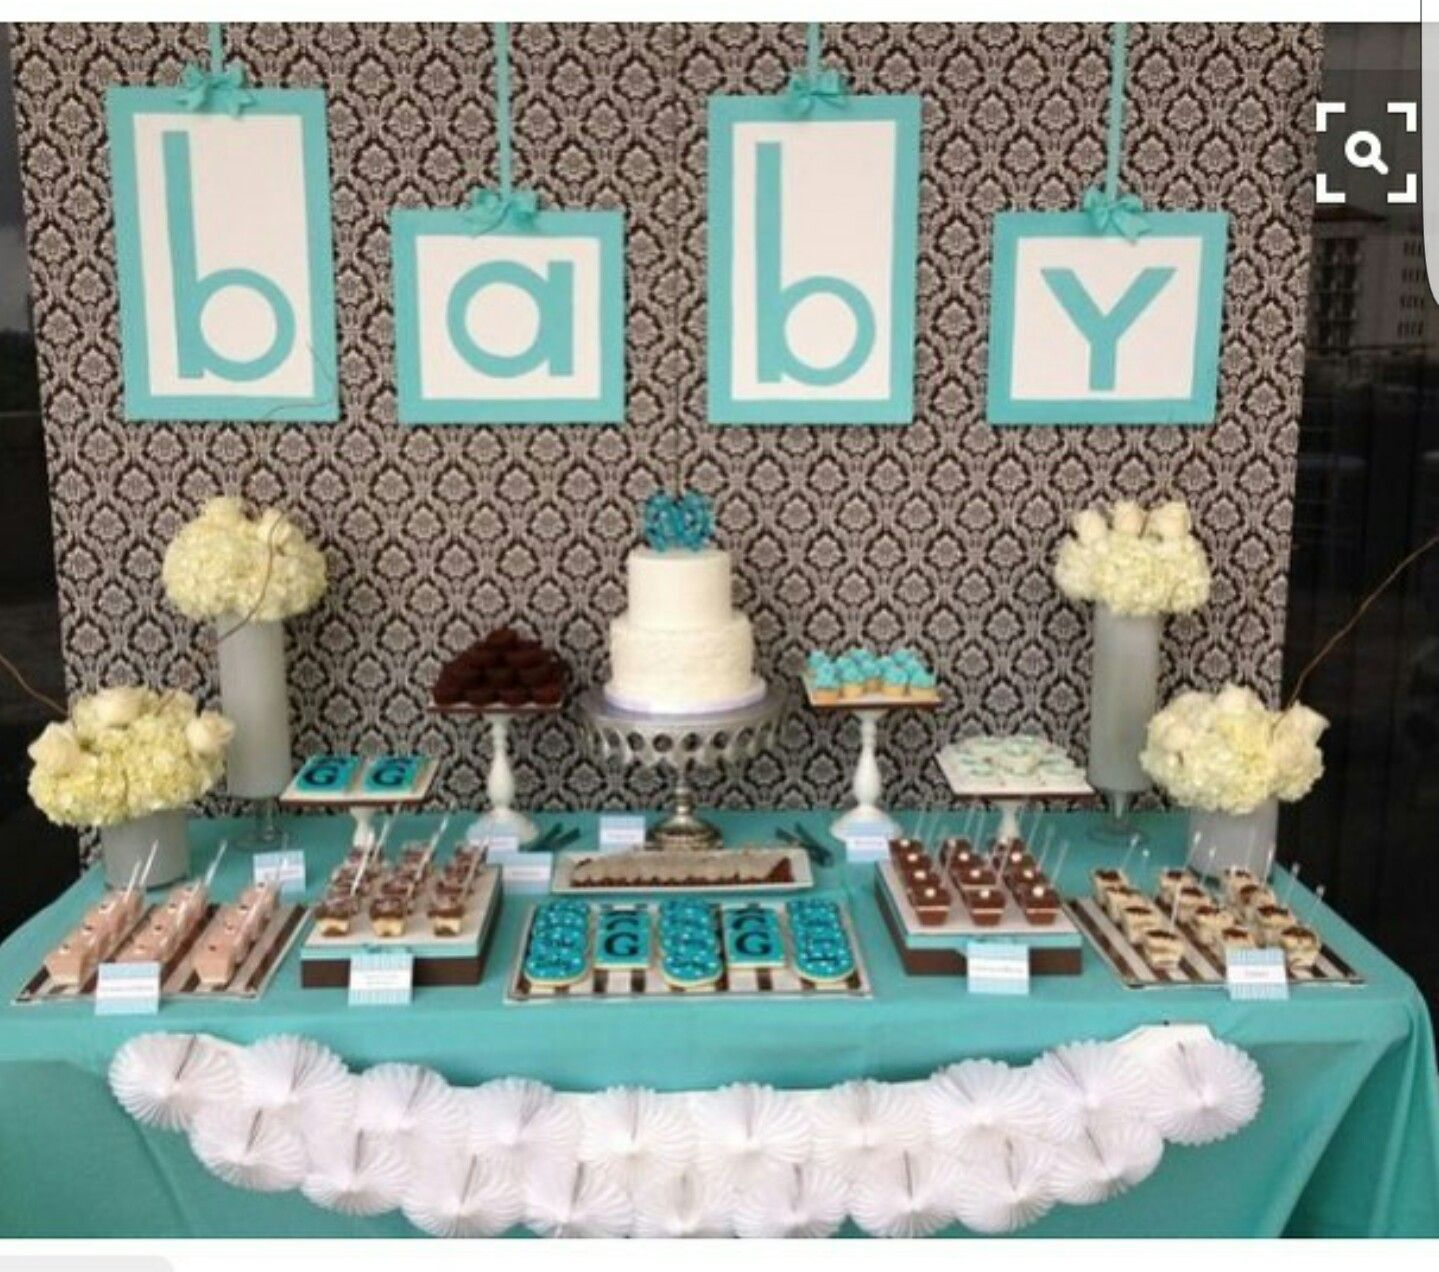 Pin By Mbali On Thato S Baby Shower Baby Shower Candy Baby